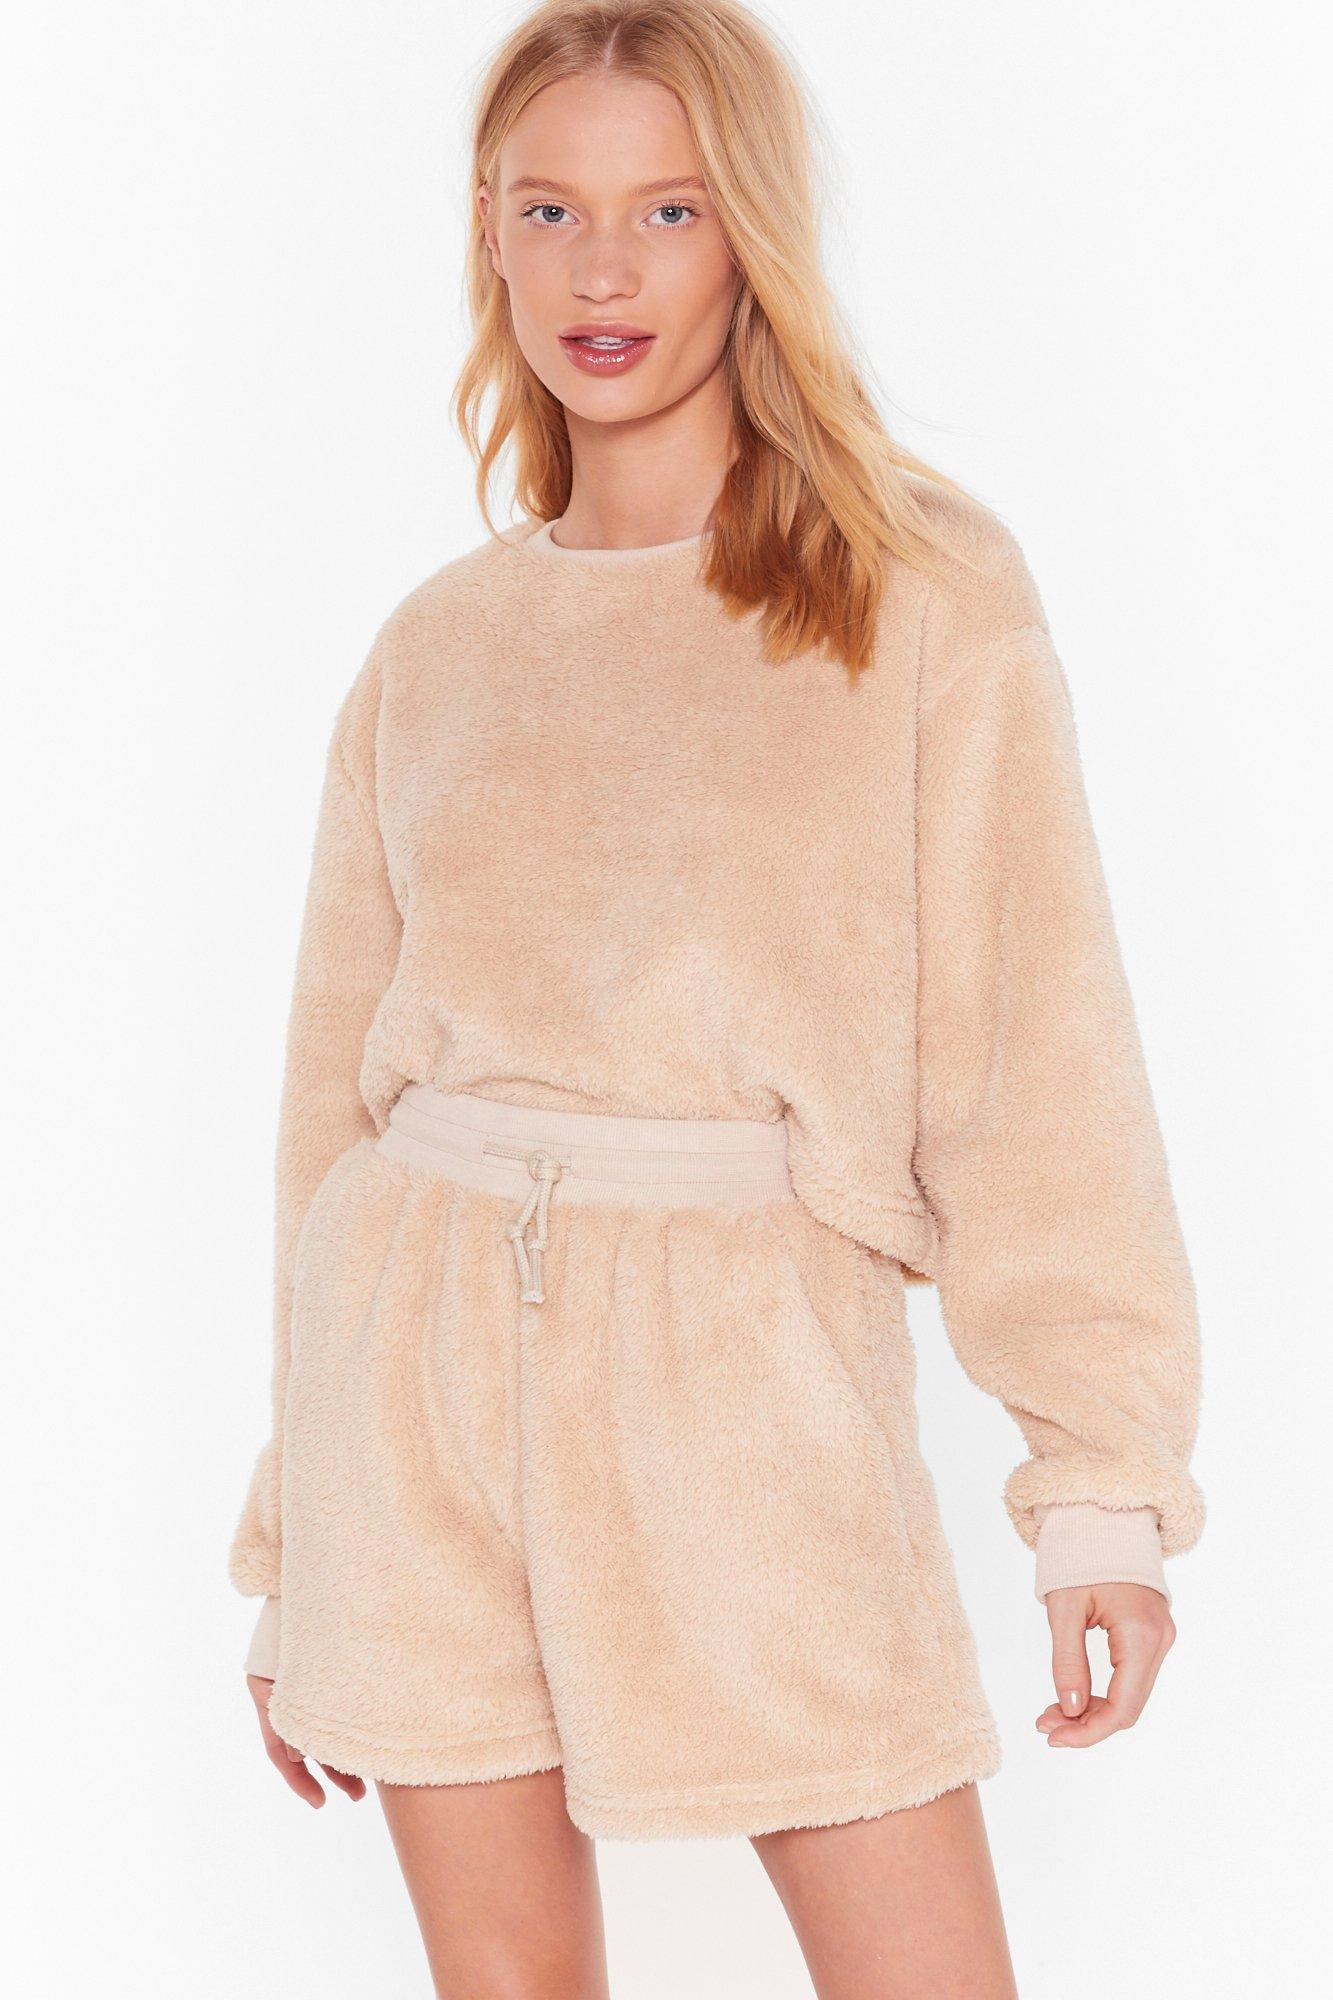 Image of Teddy For Bed Sweater and Shorts Lounge Set